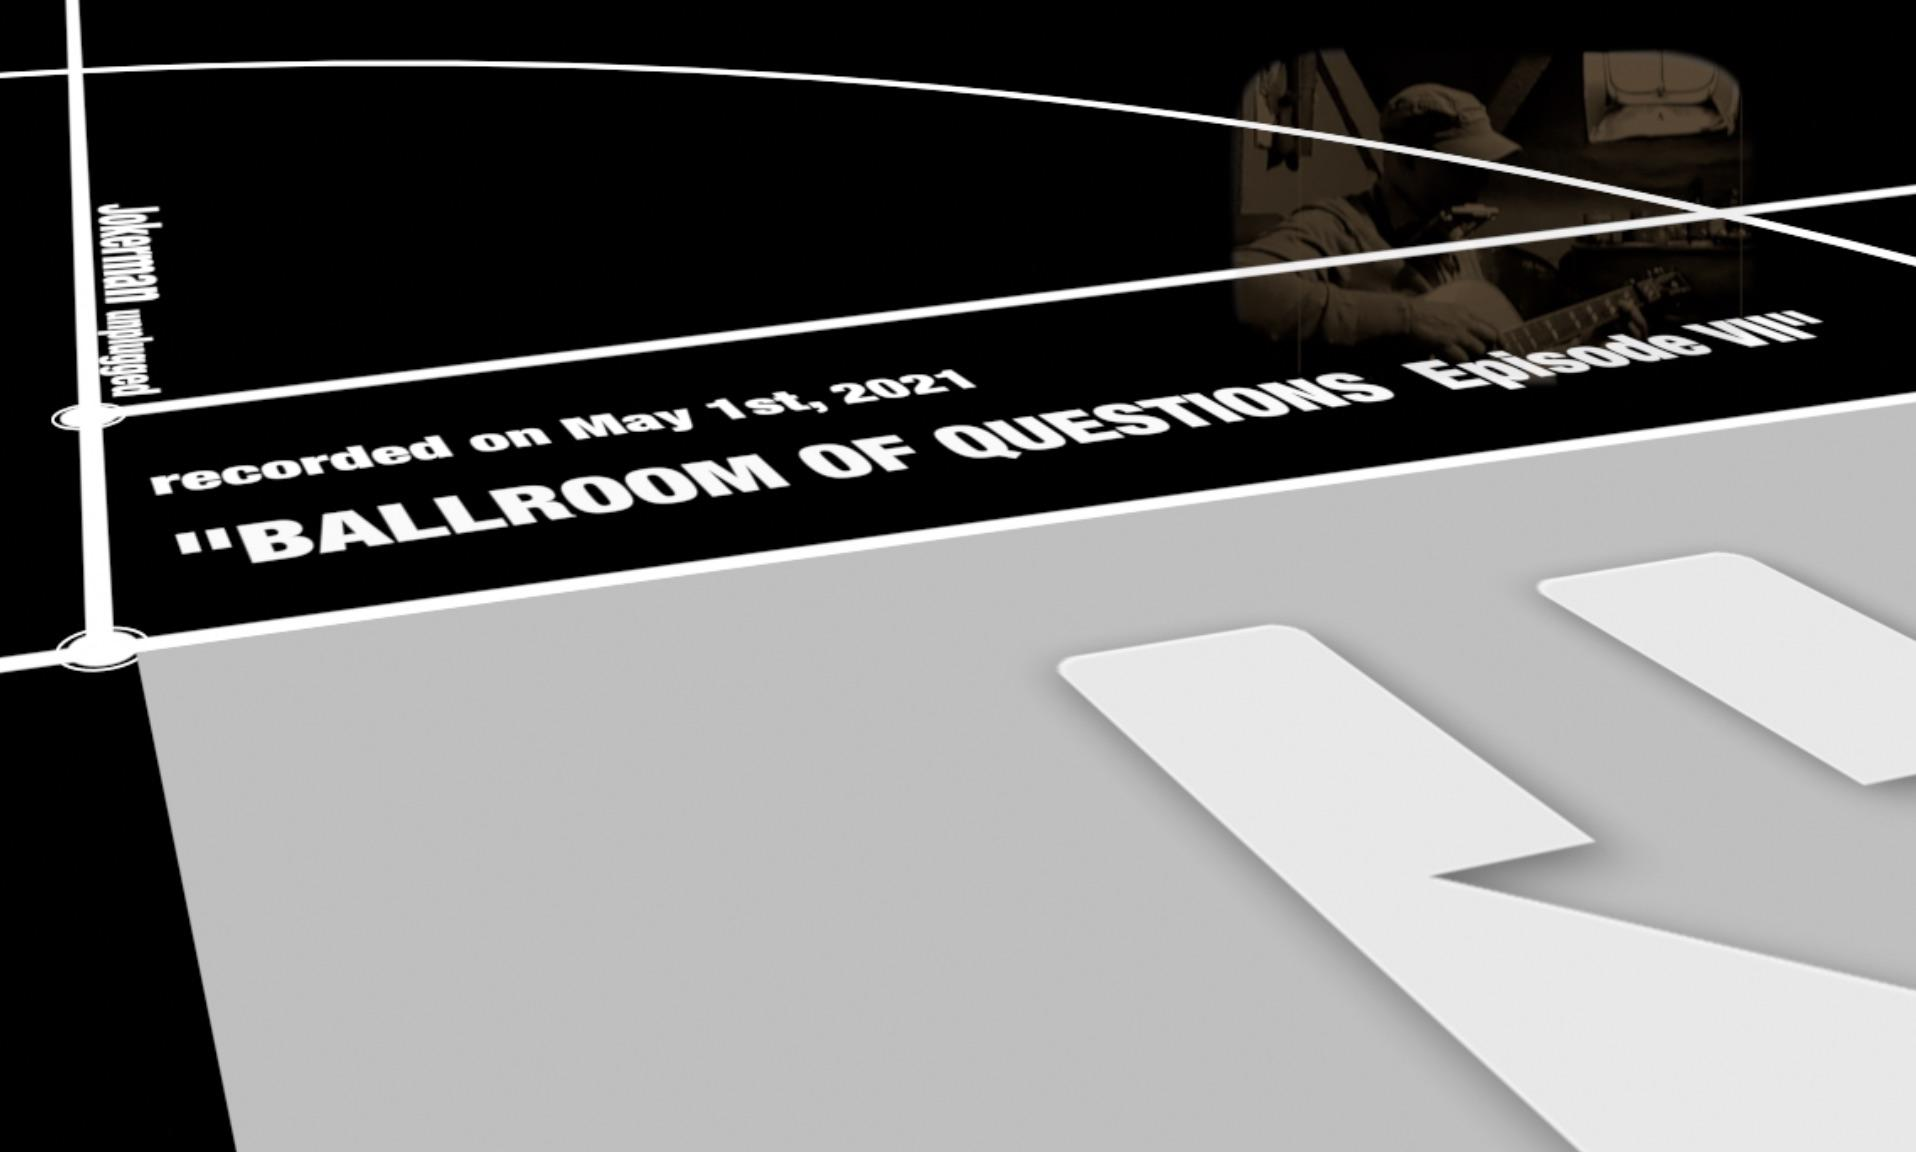 Ballroom Of Questions Episode VII